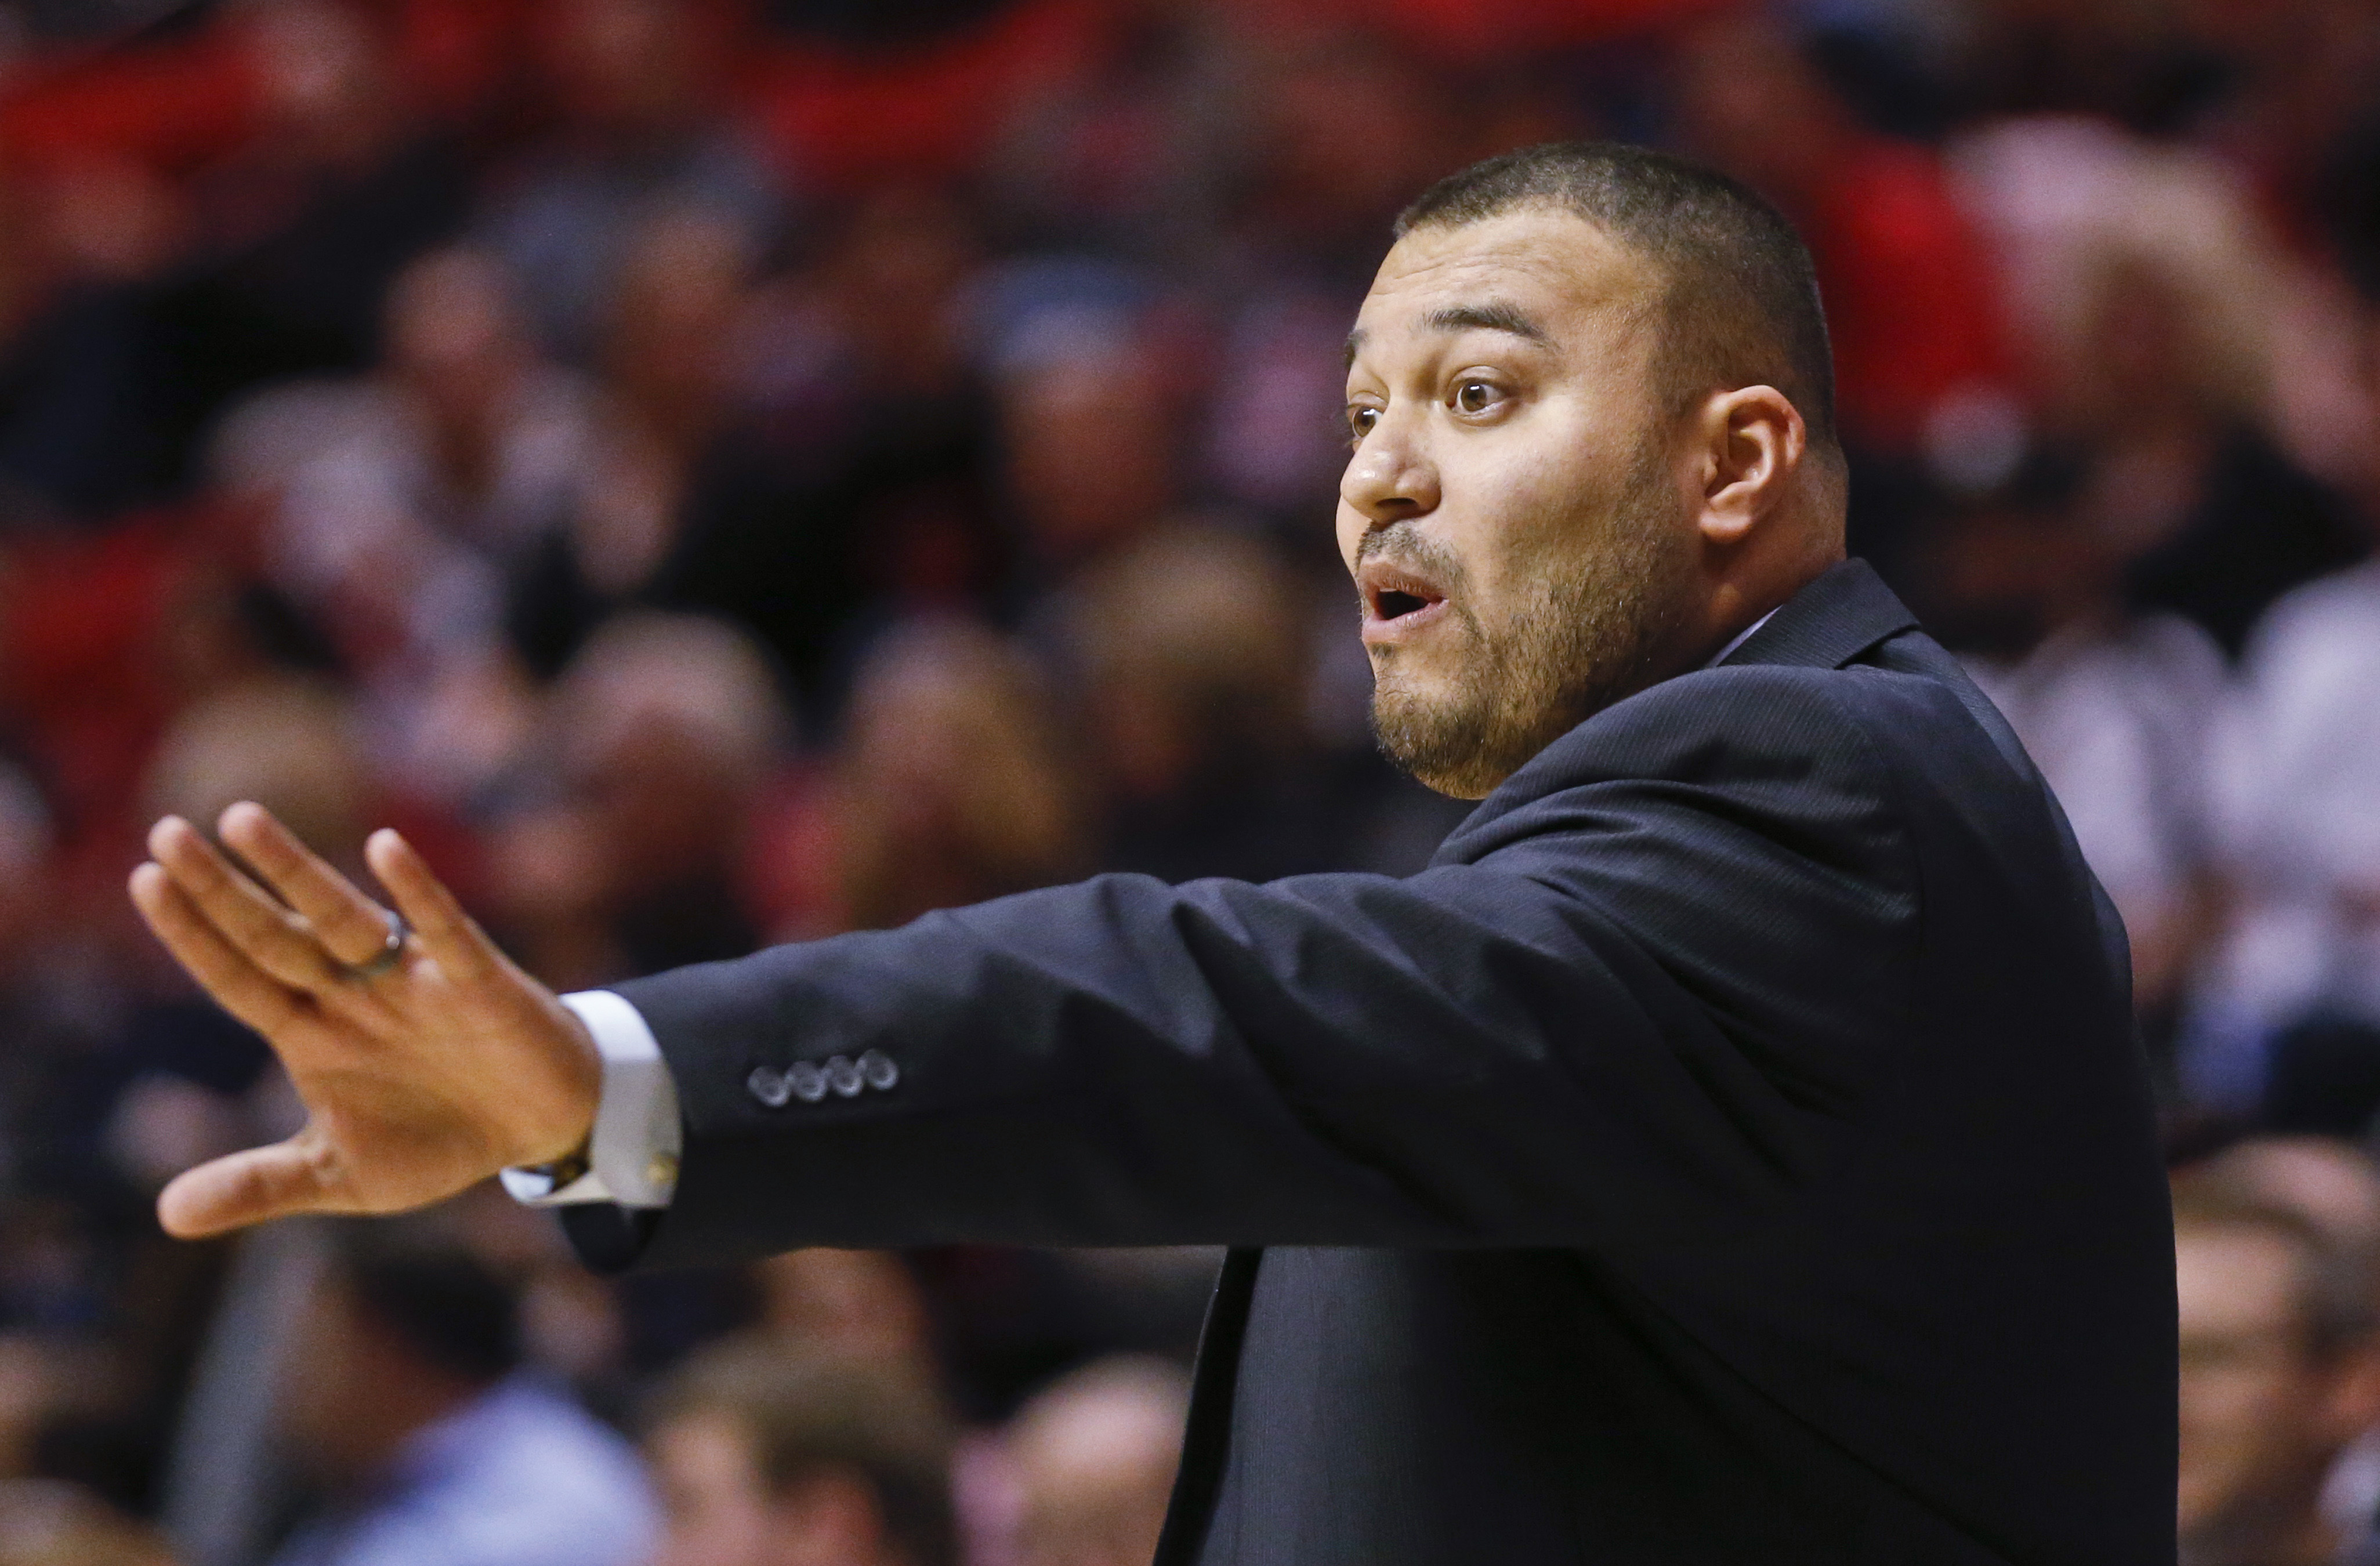 San Diego Christian coach Edgar Mendez reacts to a call in the first half of an NCAA college basketball game against the San Diego State, Wednesday, Nov. 18, 2015, in San Diego. (AP Photo/Lenny Ignelzi)